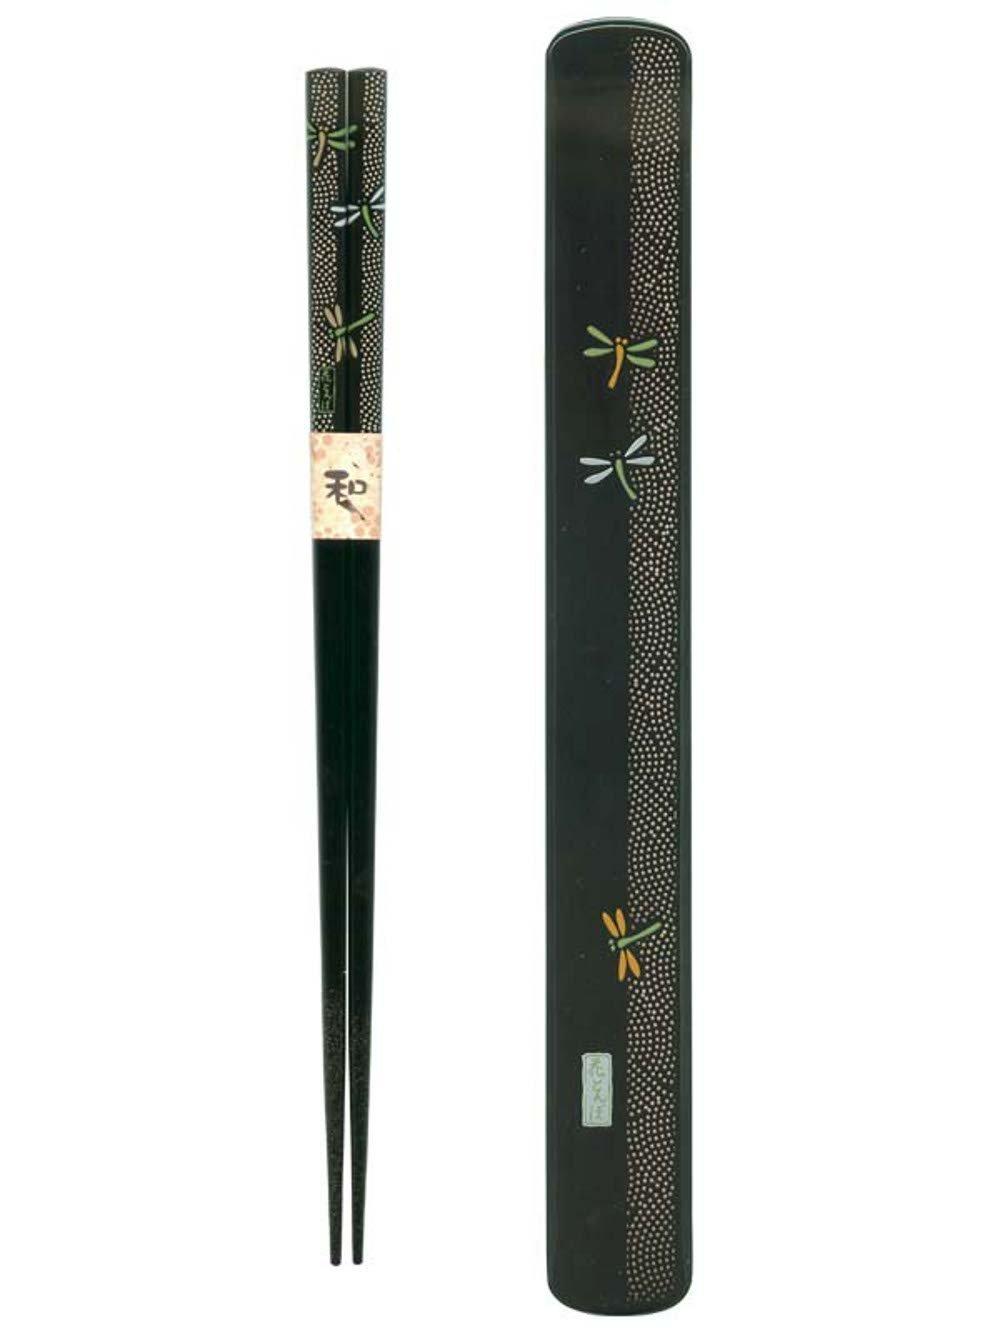 Ryu Mei 058030 Japanese Black Box and Chopstick Set, Dragonfly, 9 Inches